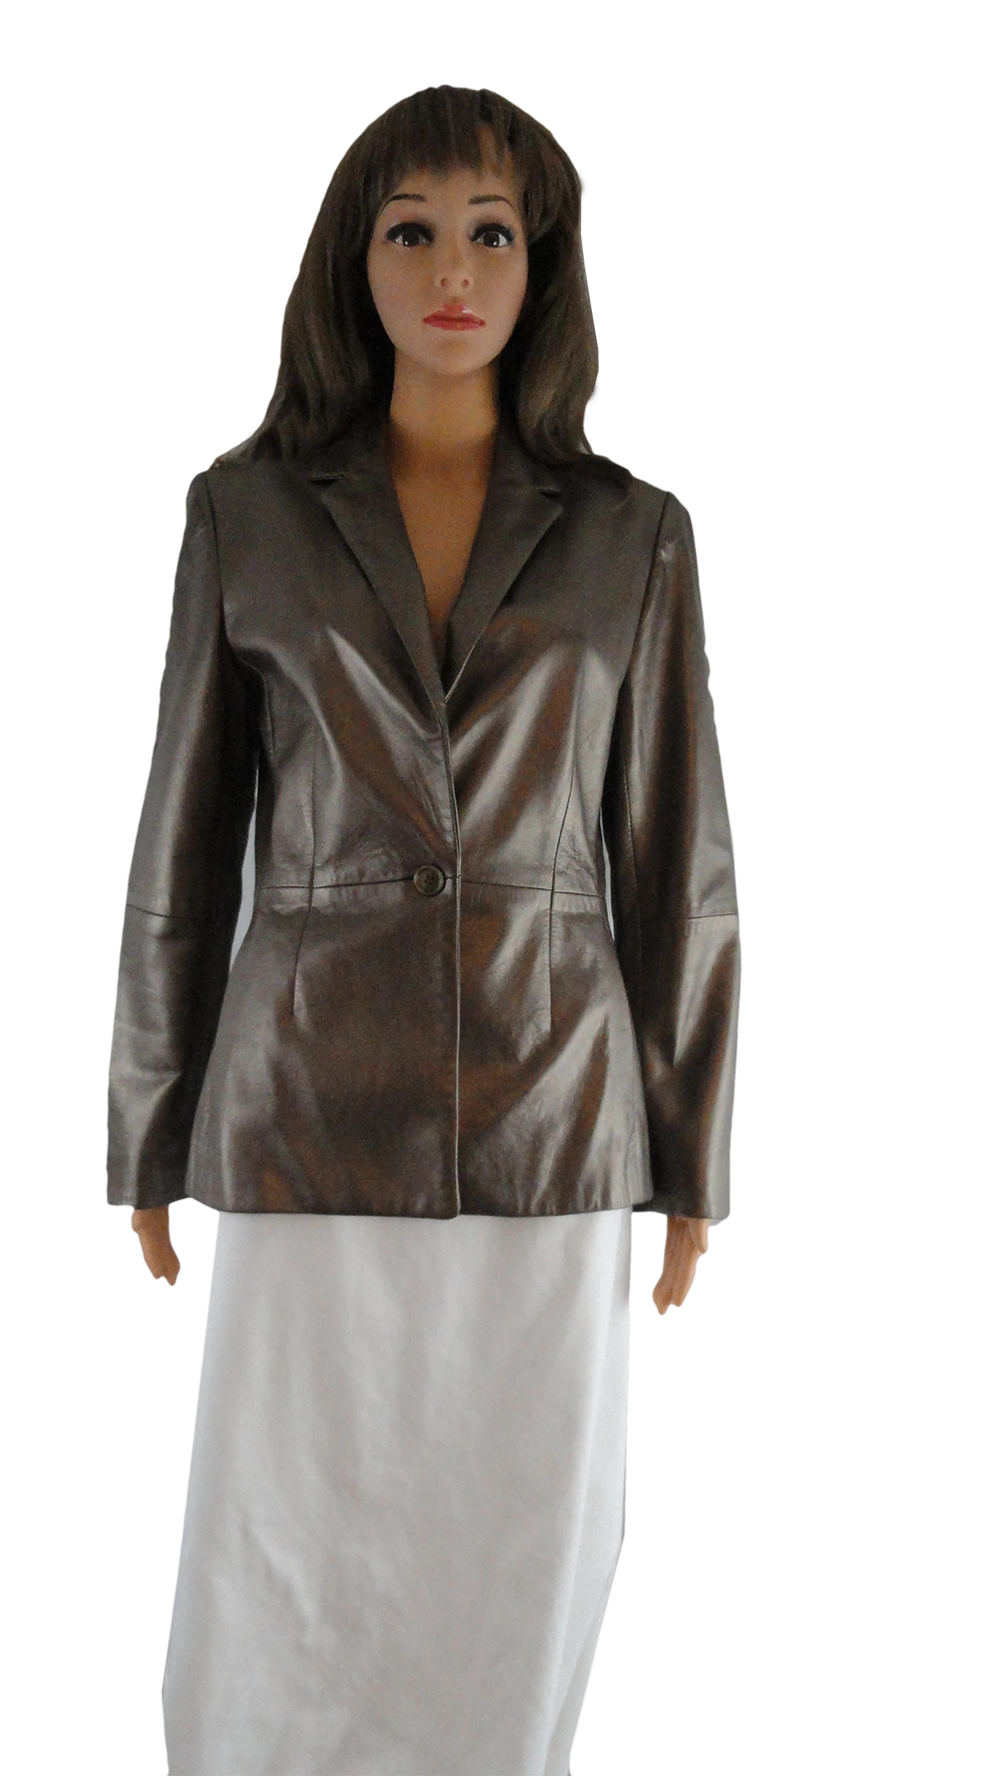 Anne Klein Leather Blazer Pewter Metallic Sz 4 (SKU 000267-1)